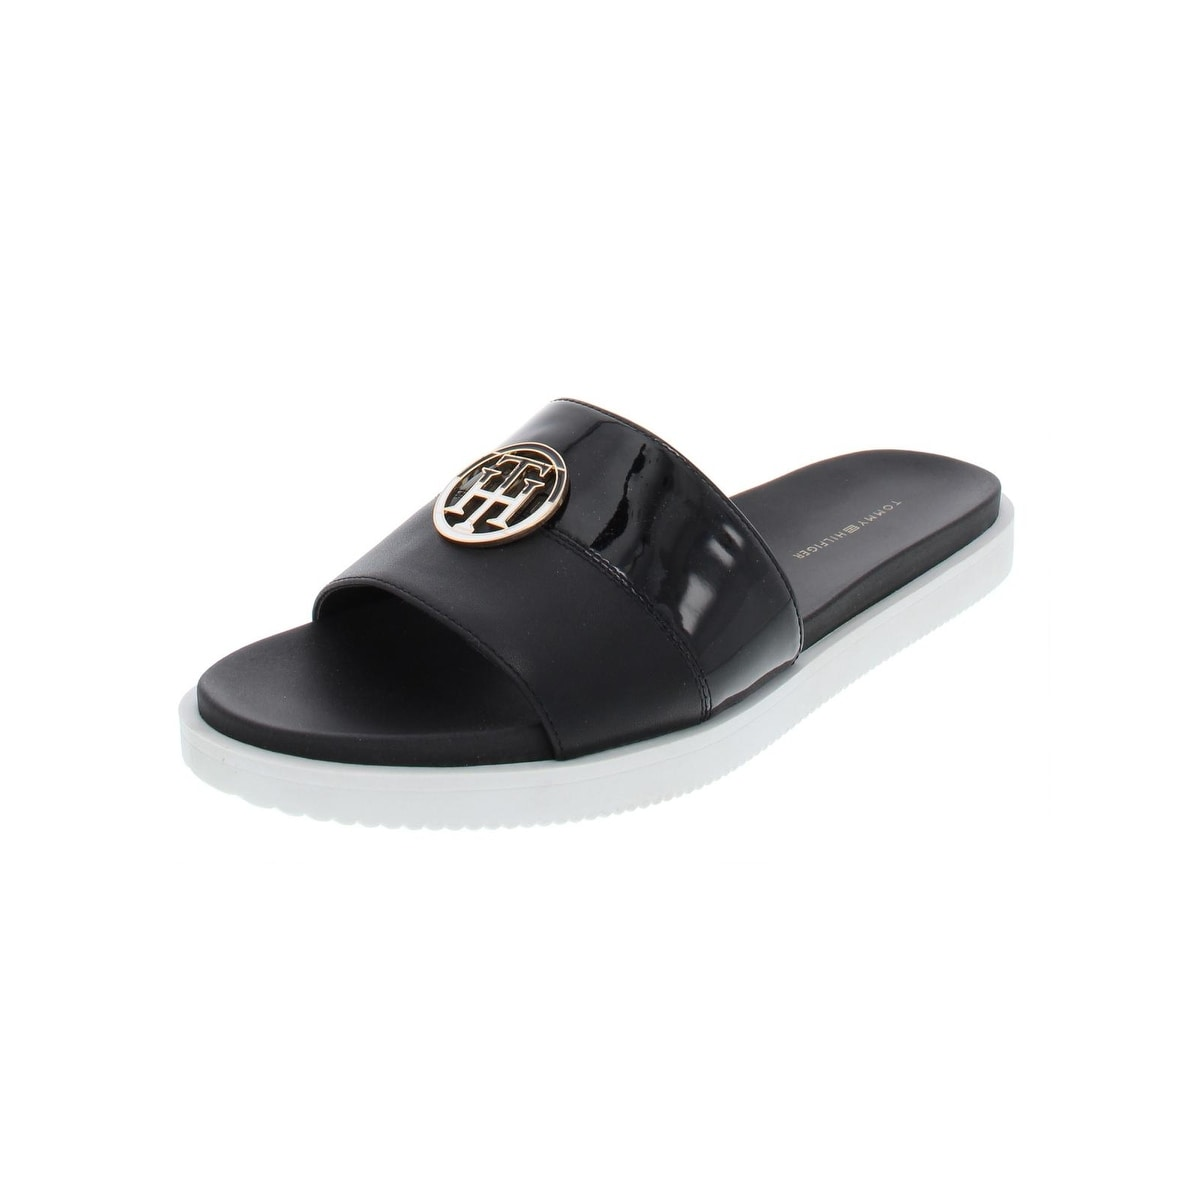 0e5e23fbe1c9bc Buy Medium Tommy Hilfiger Women s Sandals Online at Overstock